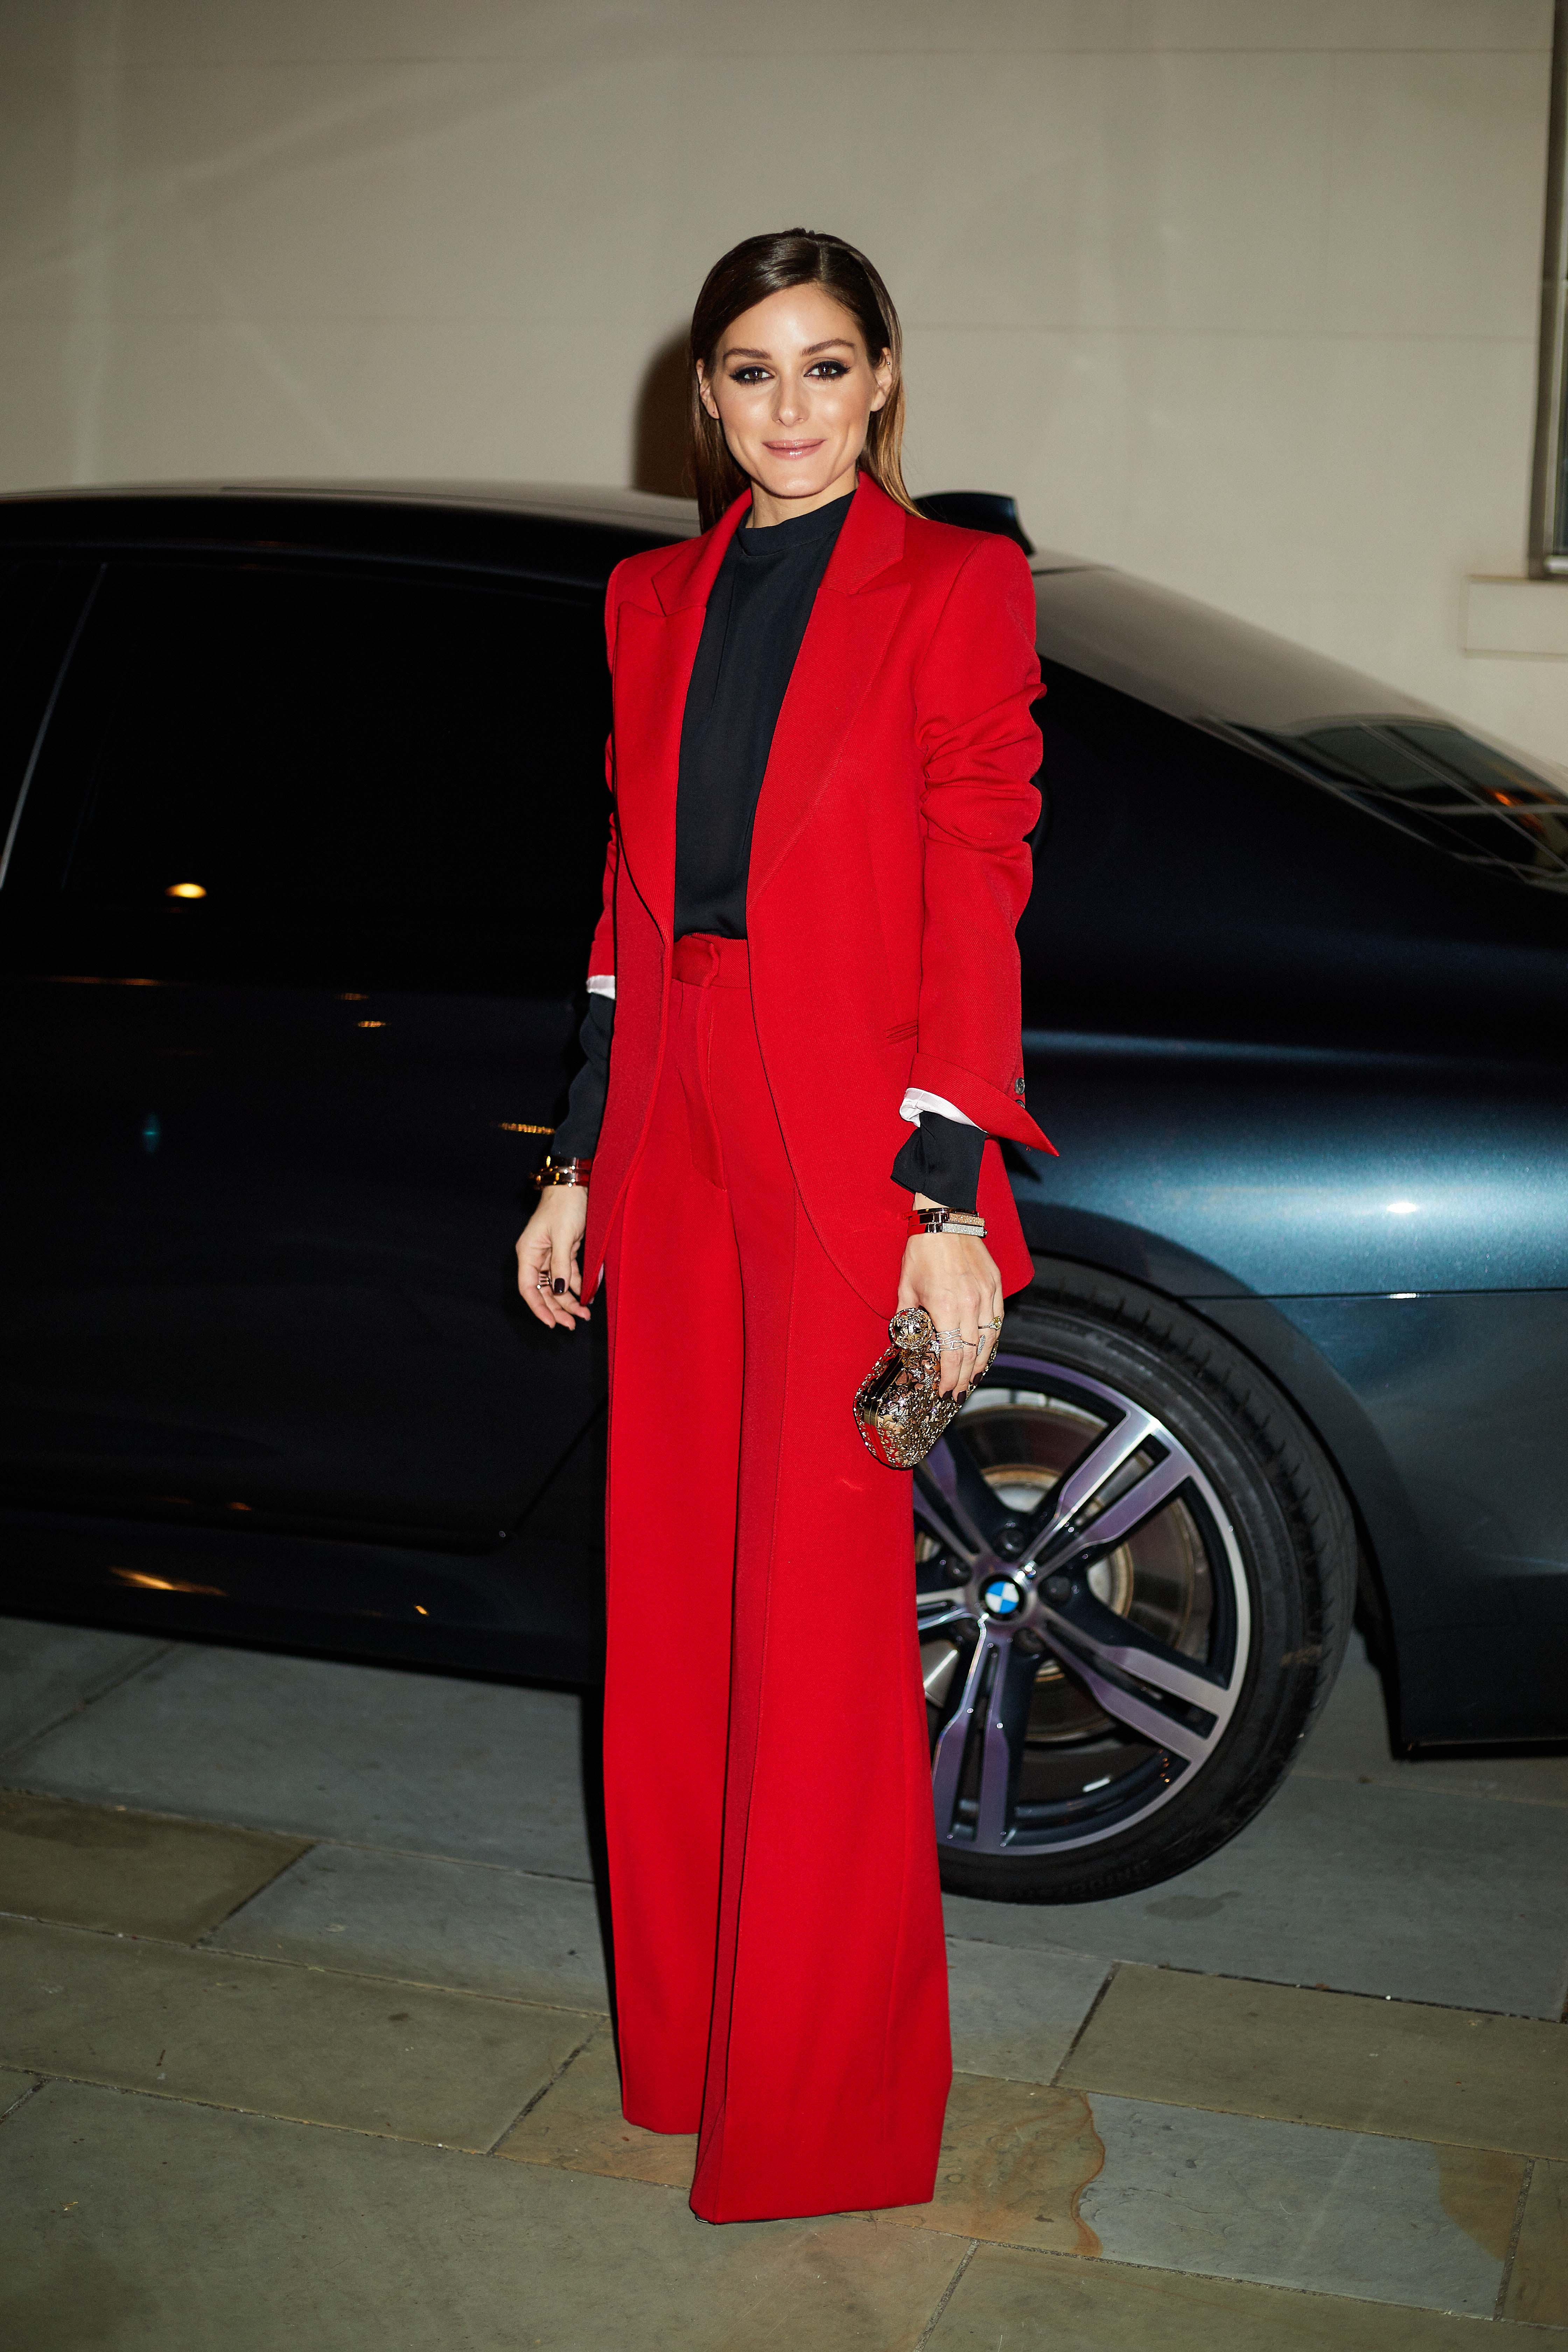 Little Red Suit By Victoria Beckham Fashion Olivia Palermo Outfit Style [ 6720 x 4480 Pixel ]